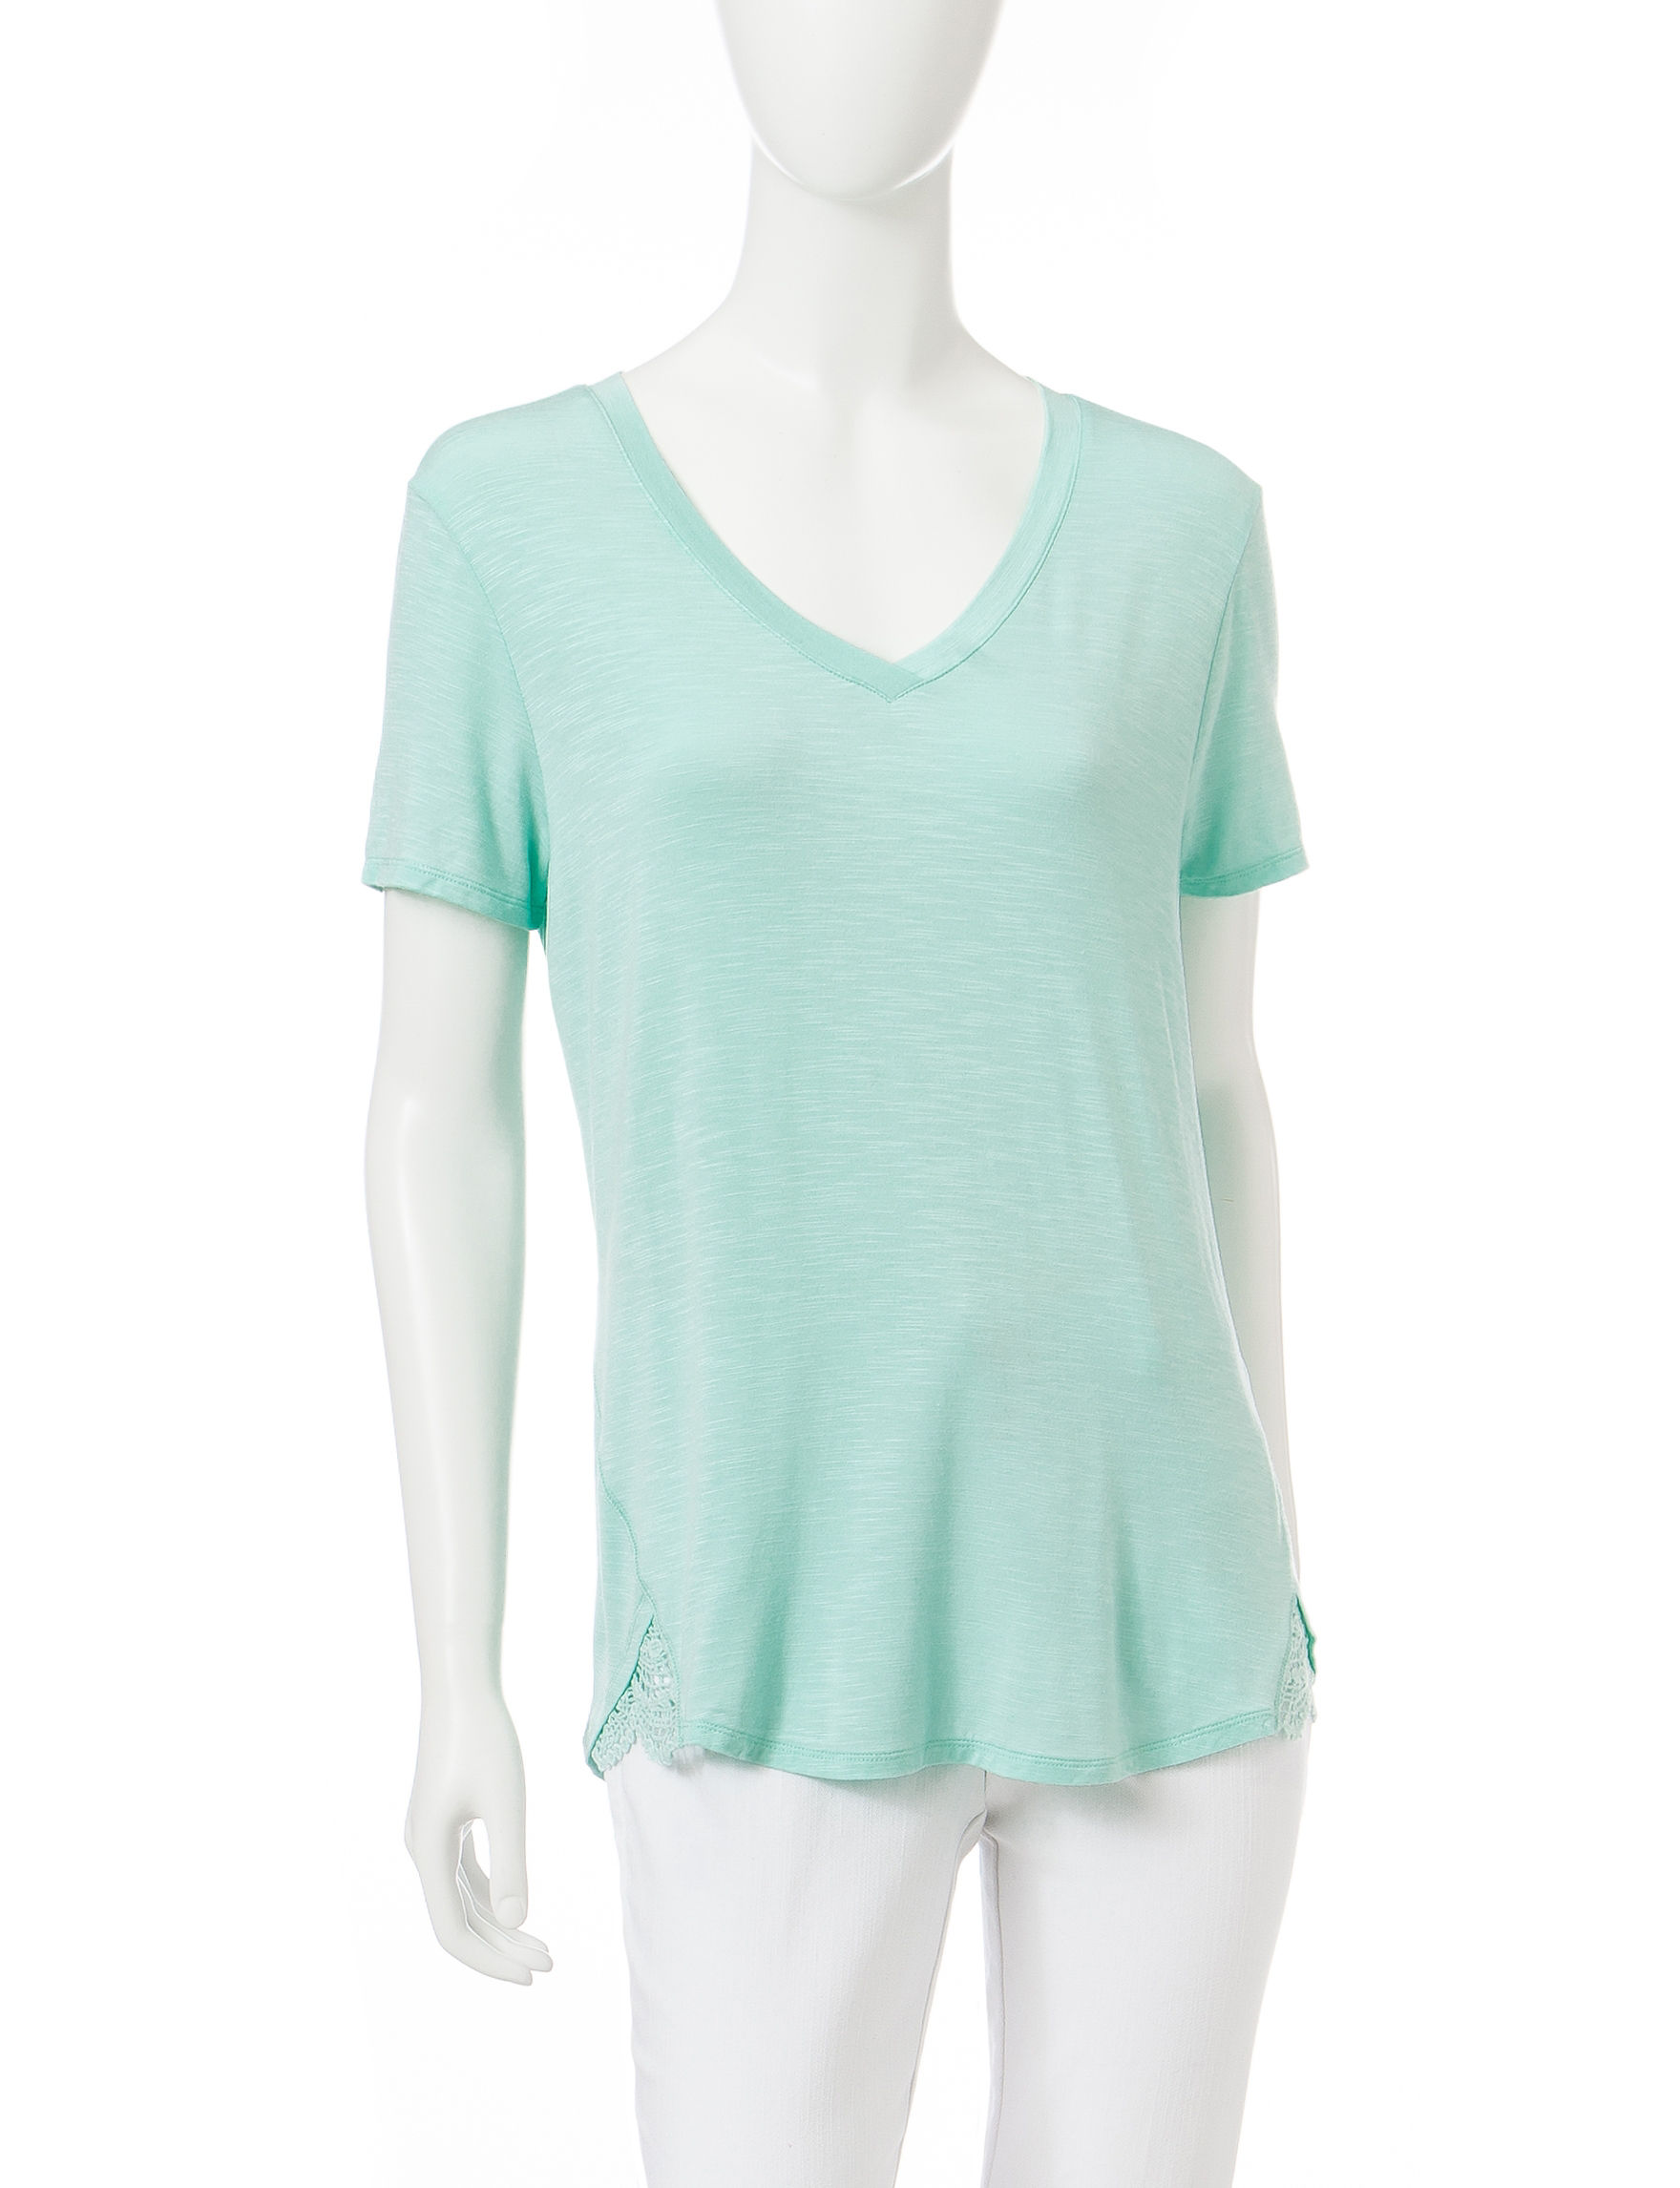 Signature Studio Mint Shirts & Blouses